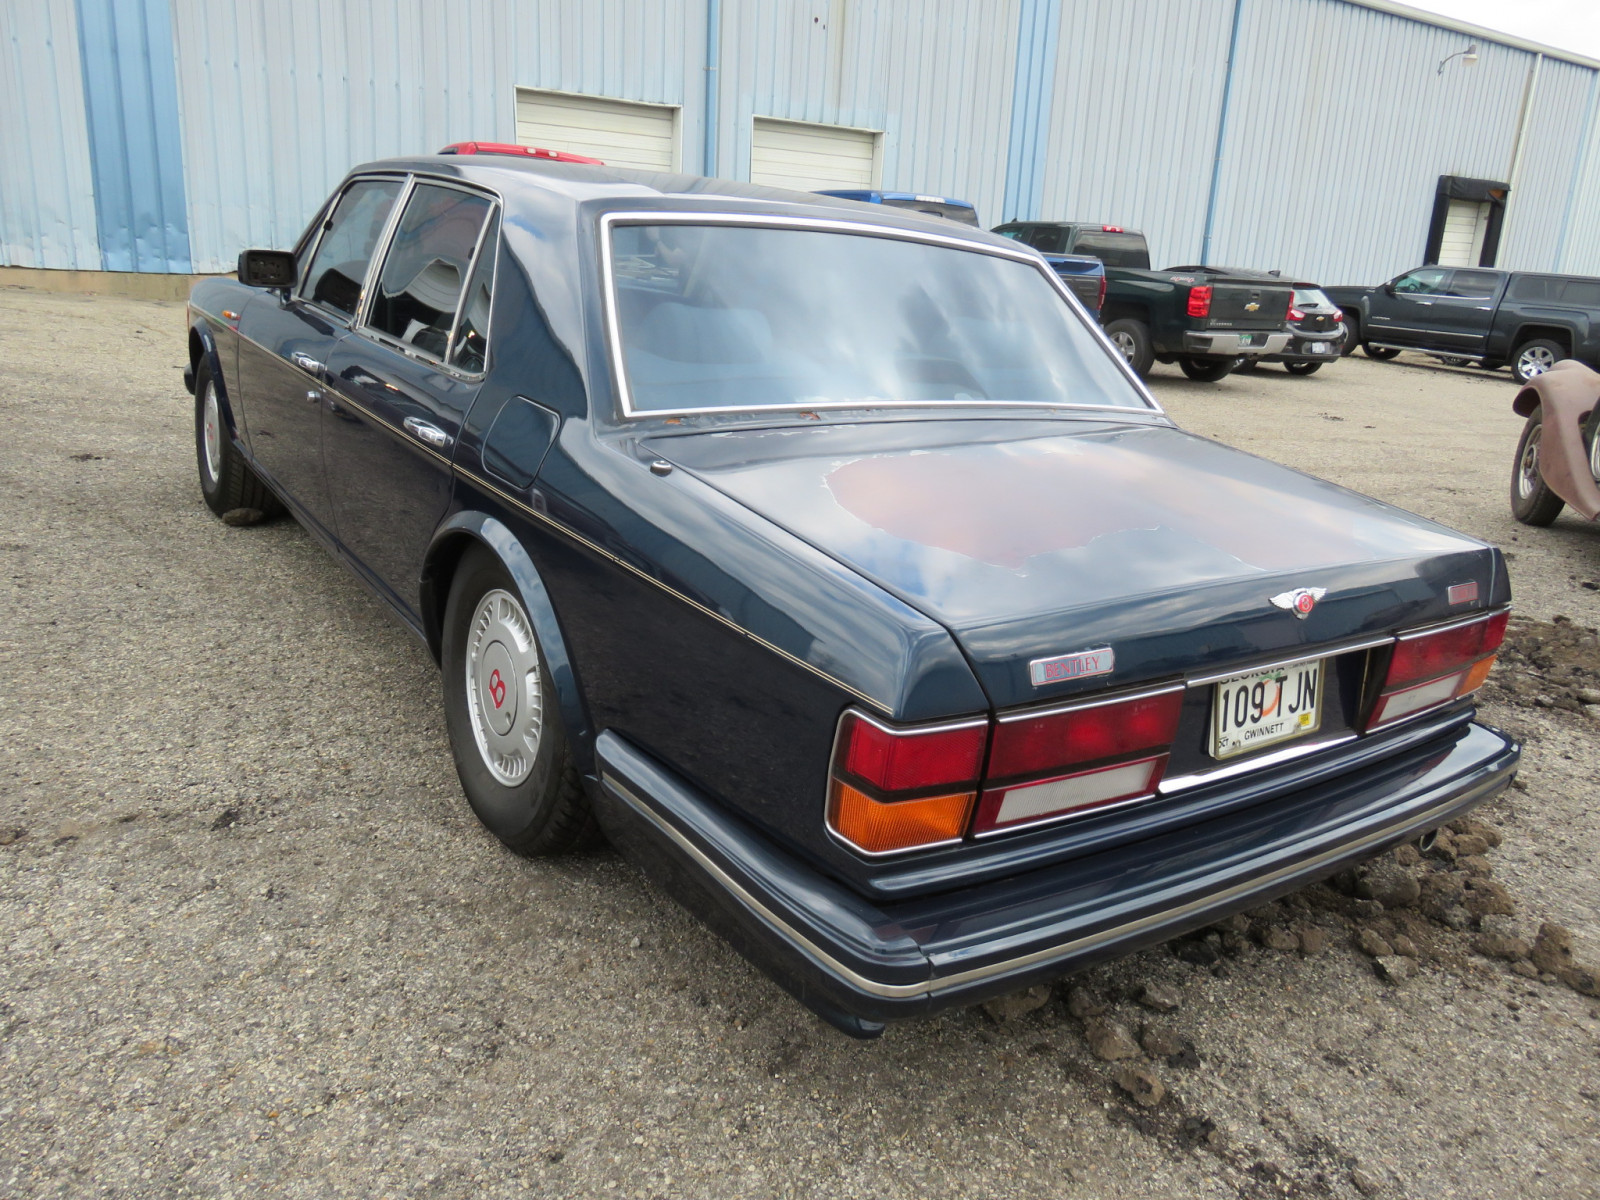 1988 Bentley Turbo R 4dr Sedan - Image 7